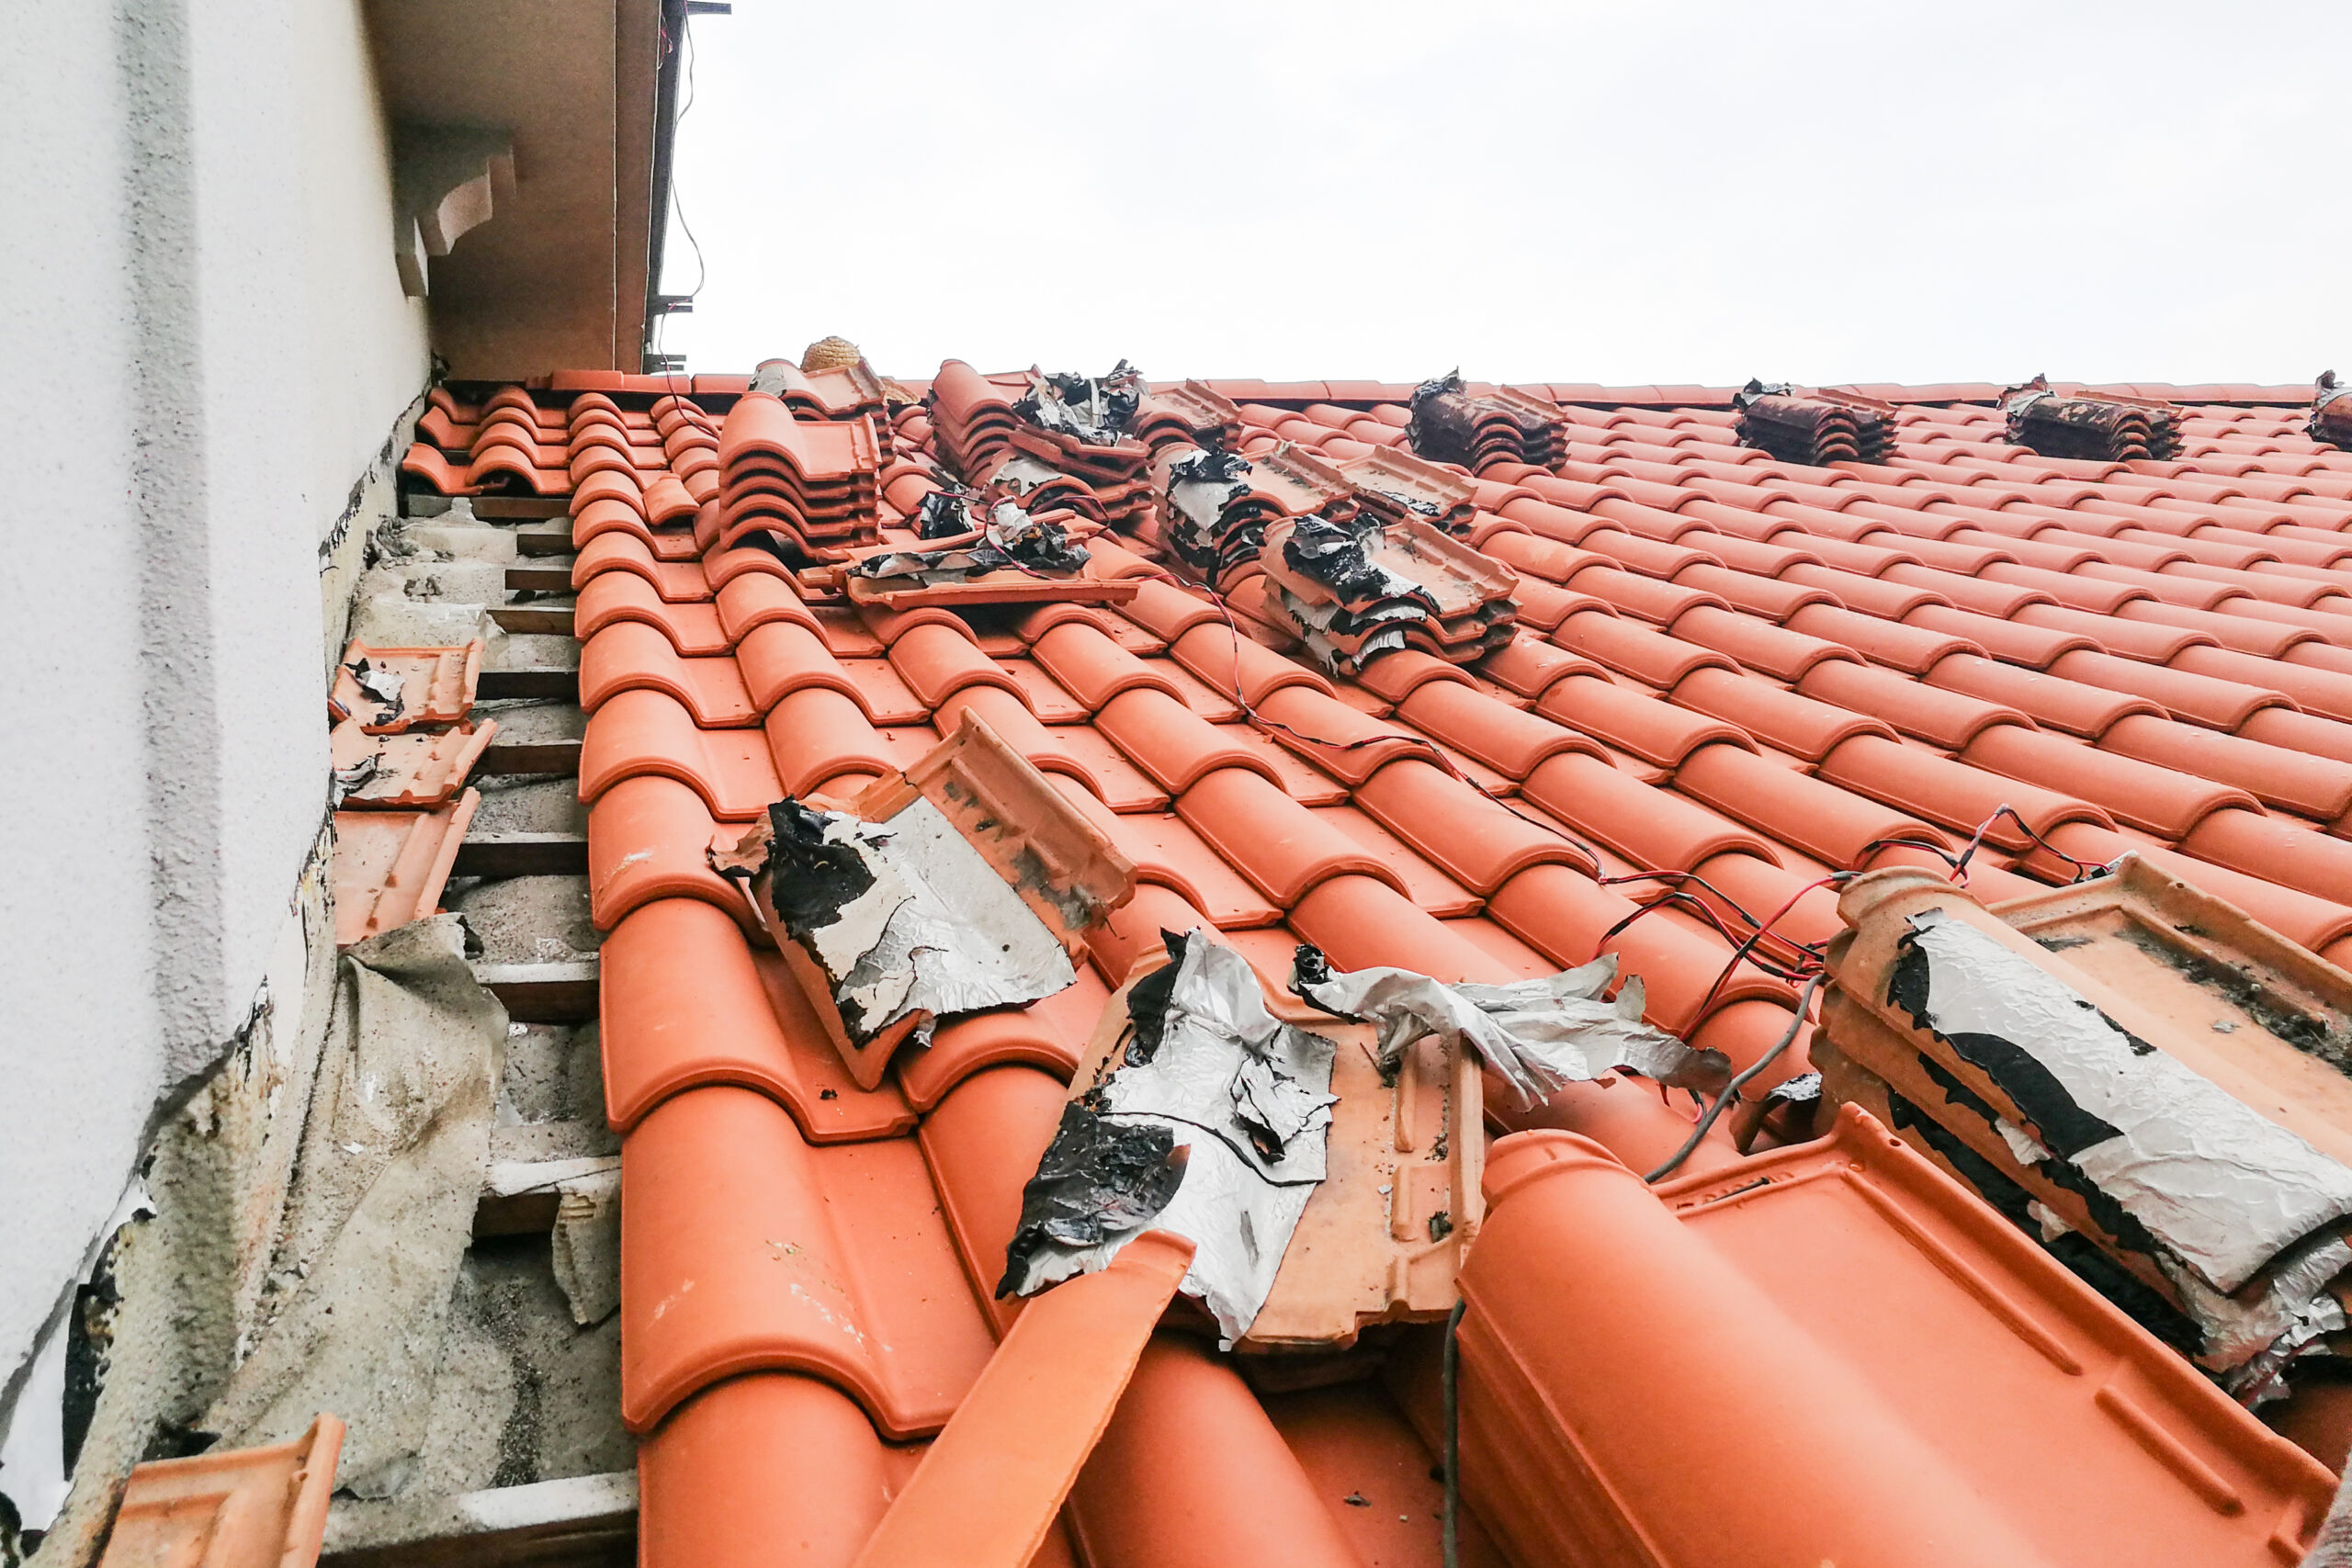 Old moldy roof tile being replaced with new tiles with nobody